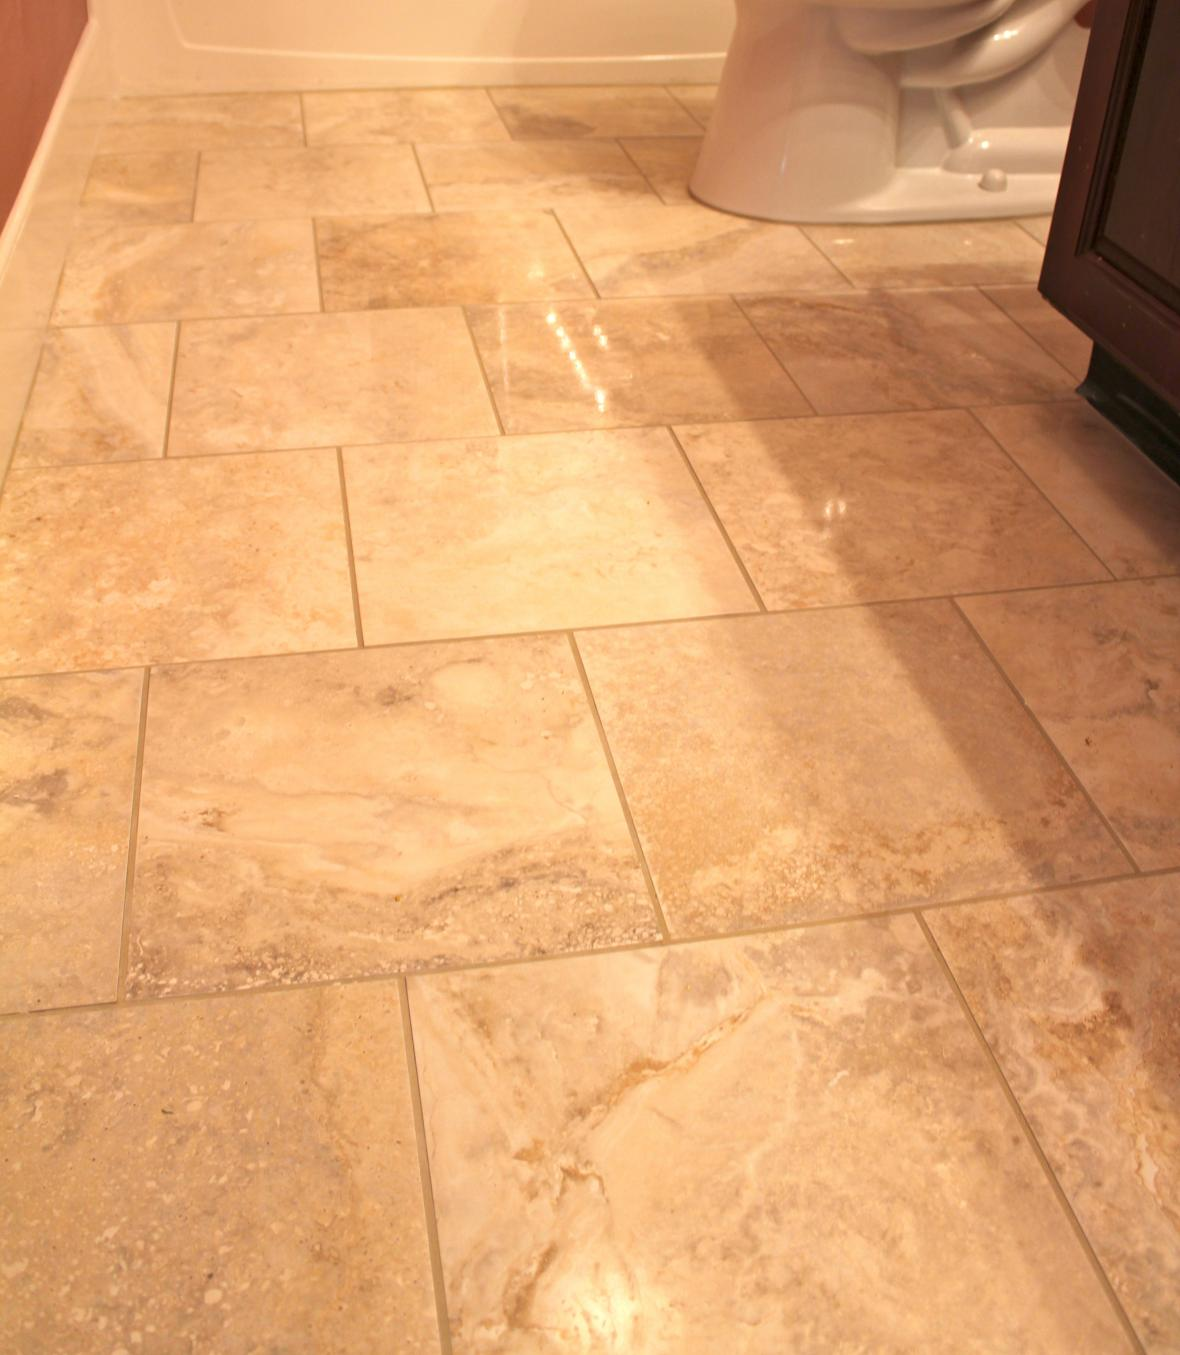 ... Tile Floor Bathroom Part 64